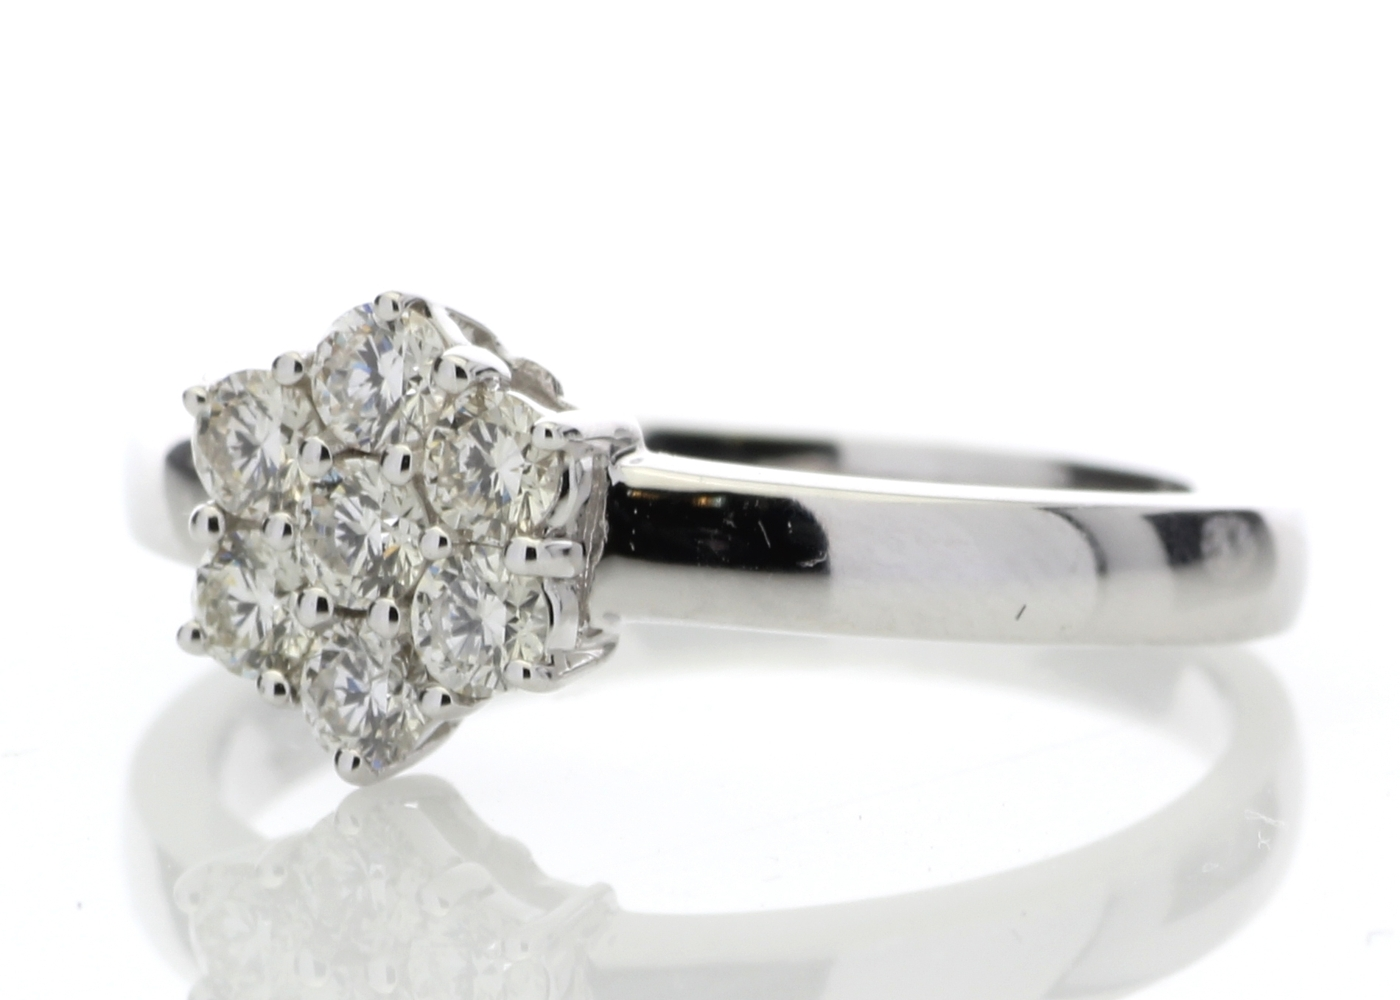 Lot 58 - 9ct White Gold Diamond Cluster Ring 0.45 Carats